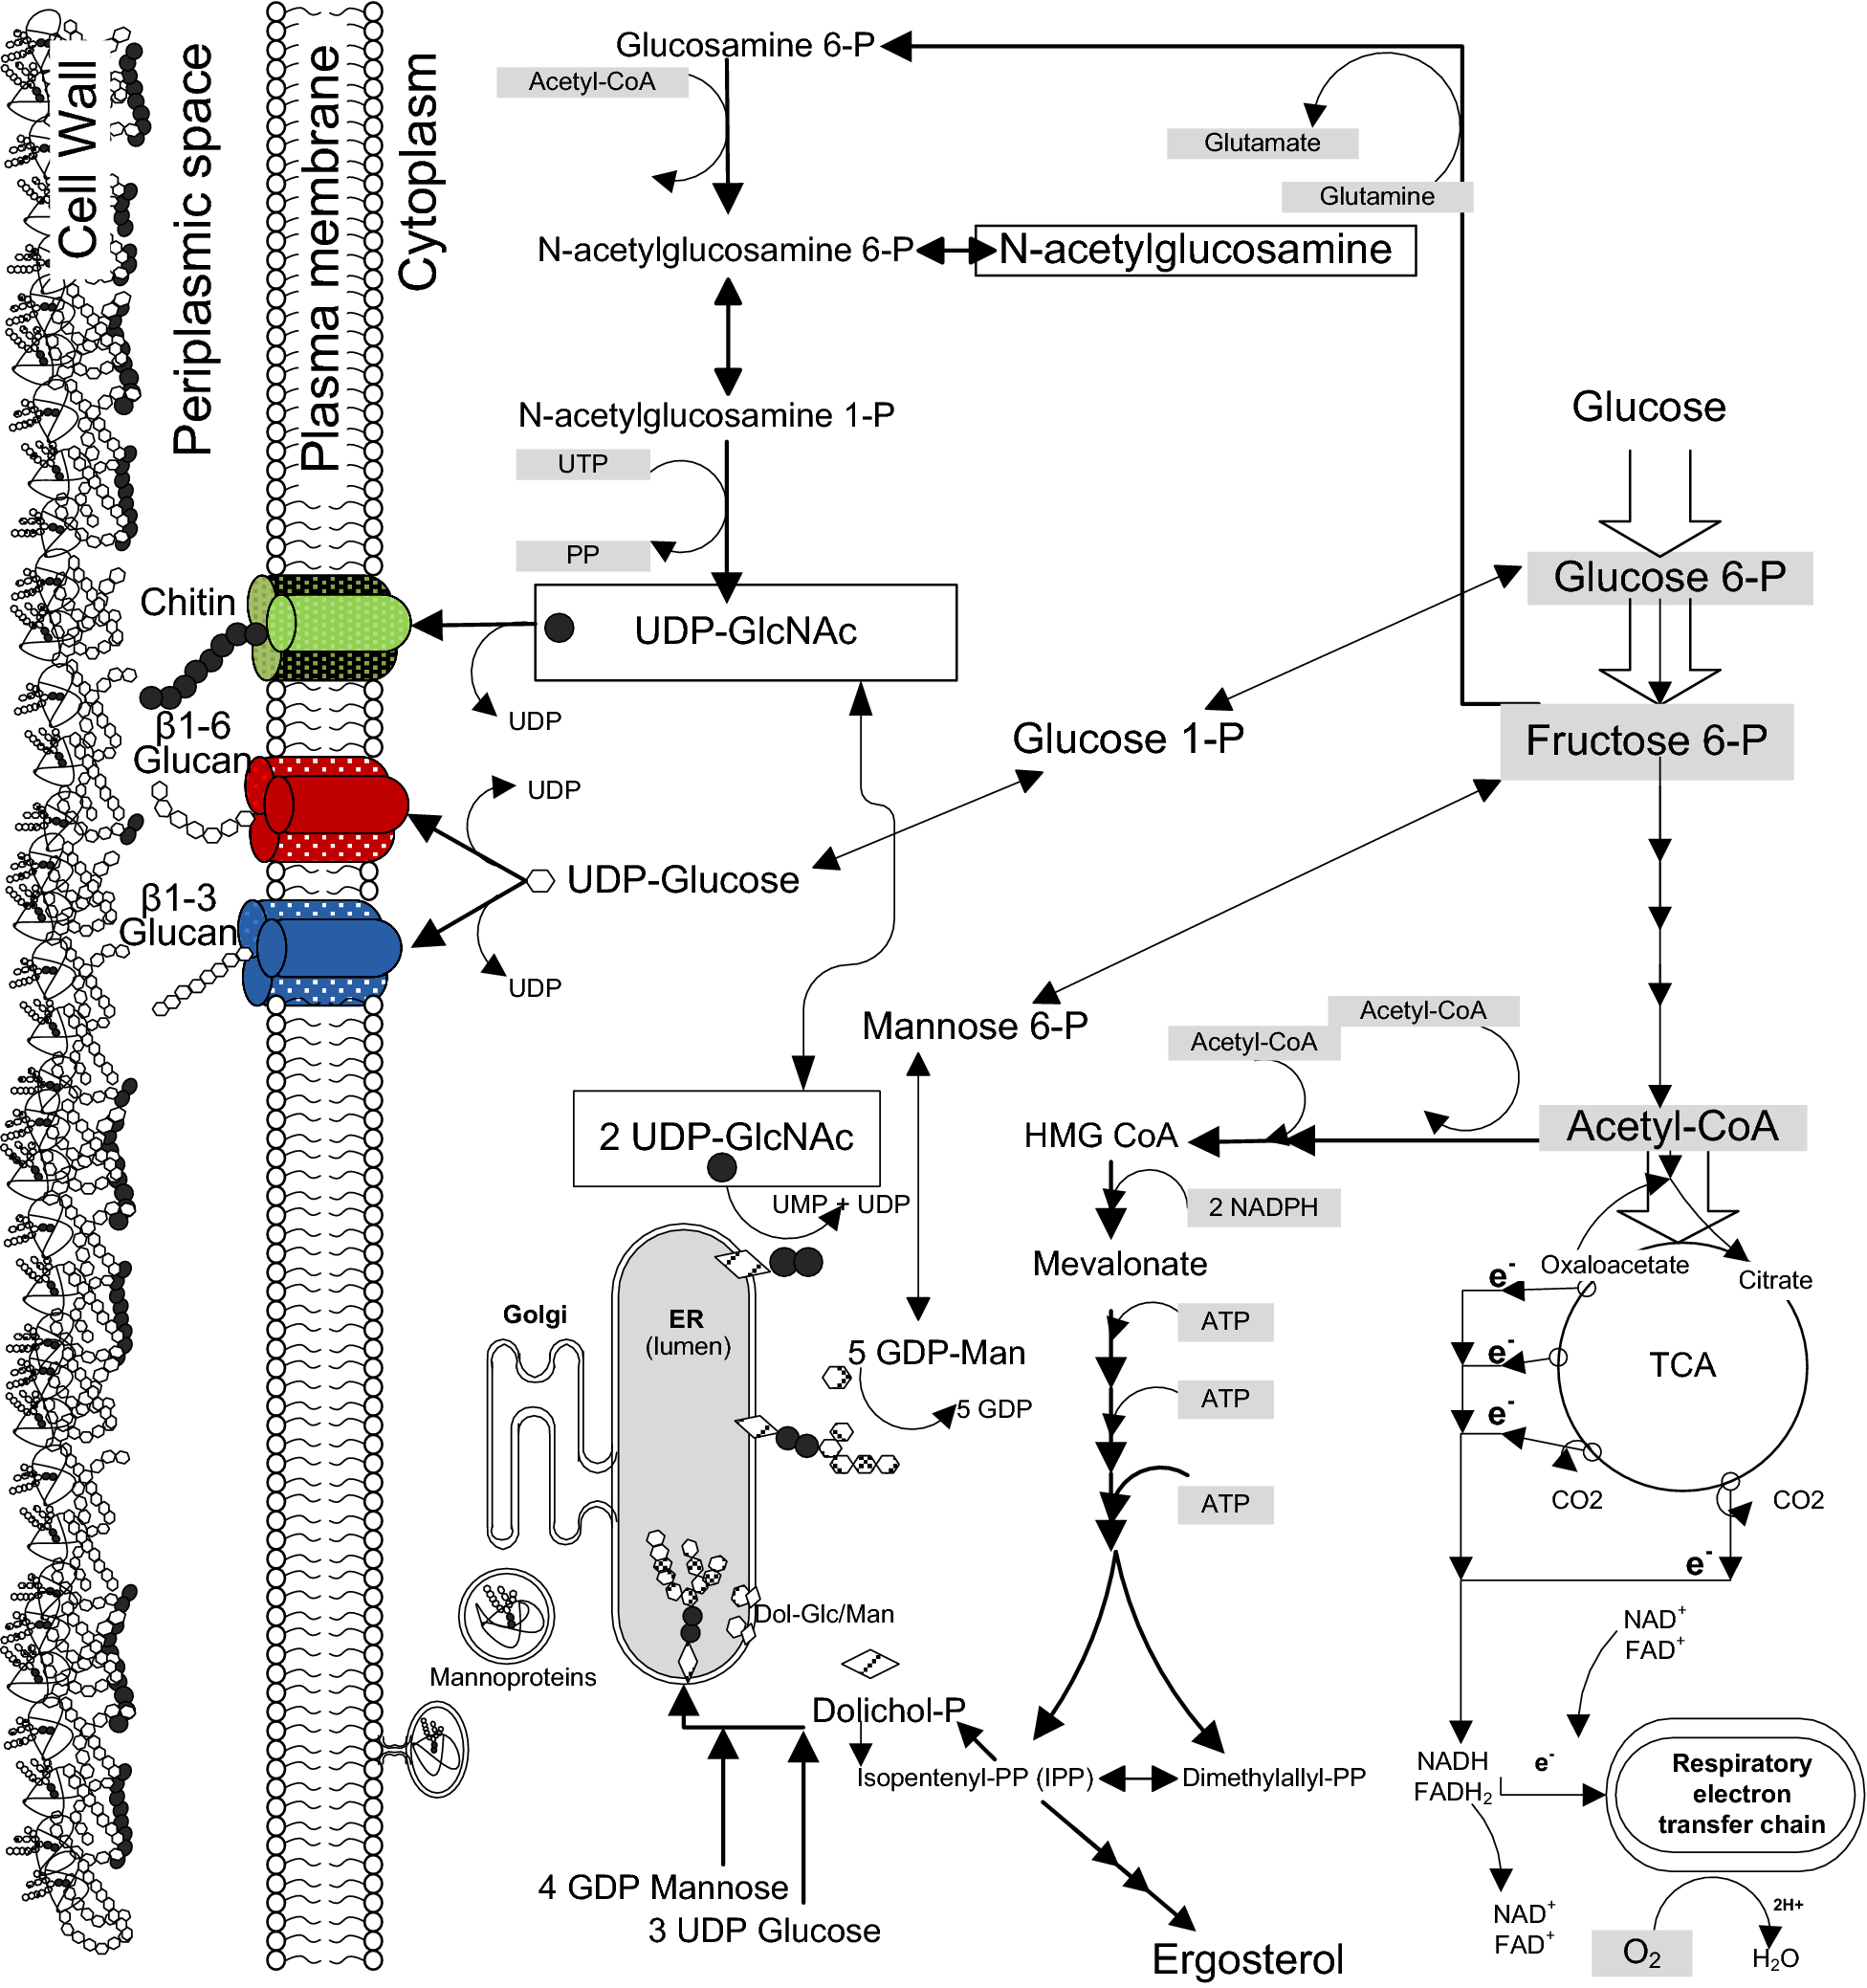 Saccharomyces cerevisiae morphological changes and